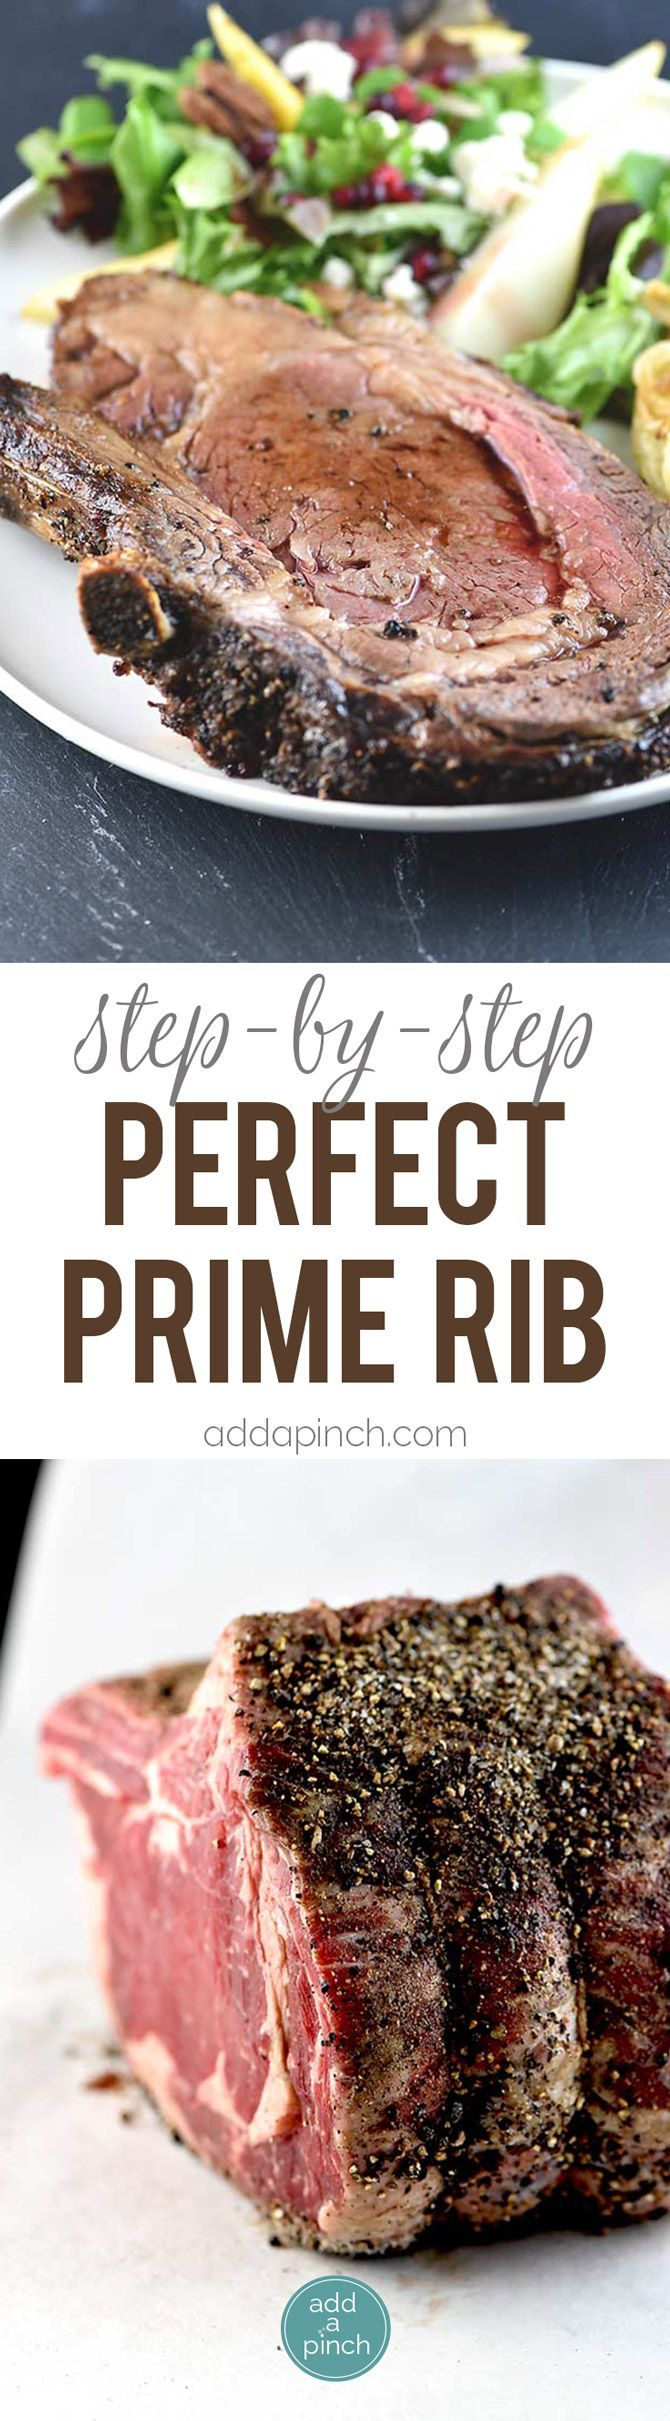 Perfect Prime Rib Recipe - Delicious dish that is a family favorite! Step by step instructions for this crave-worthy recipe! // addapinch.com